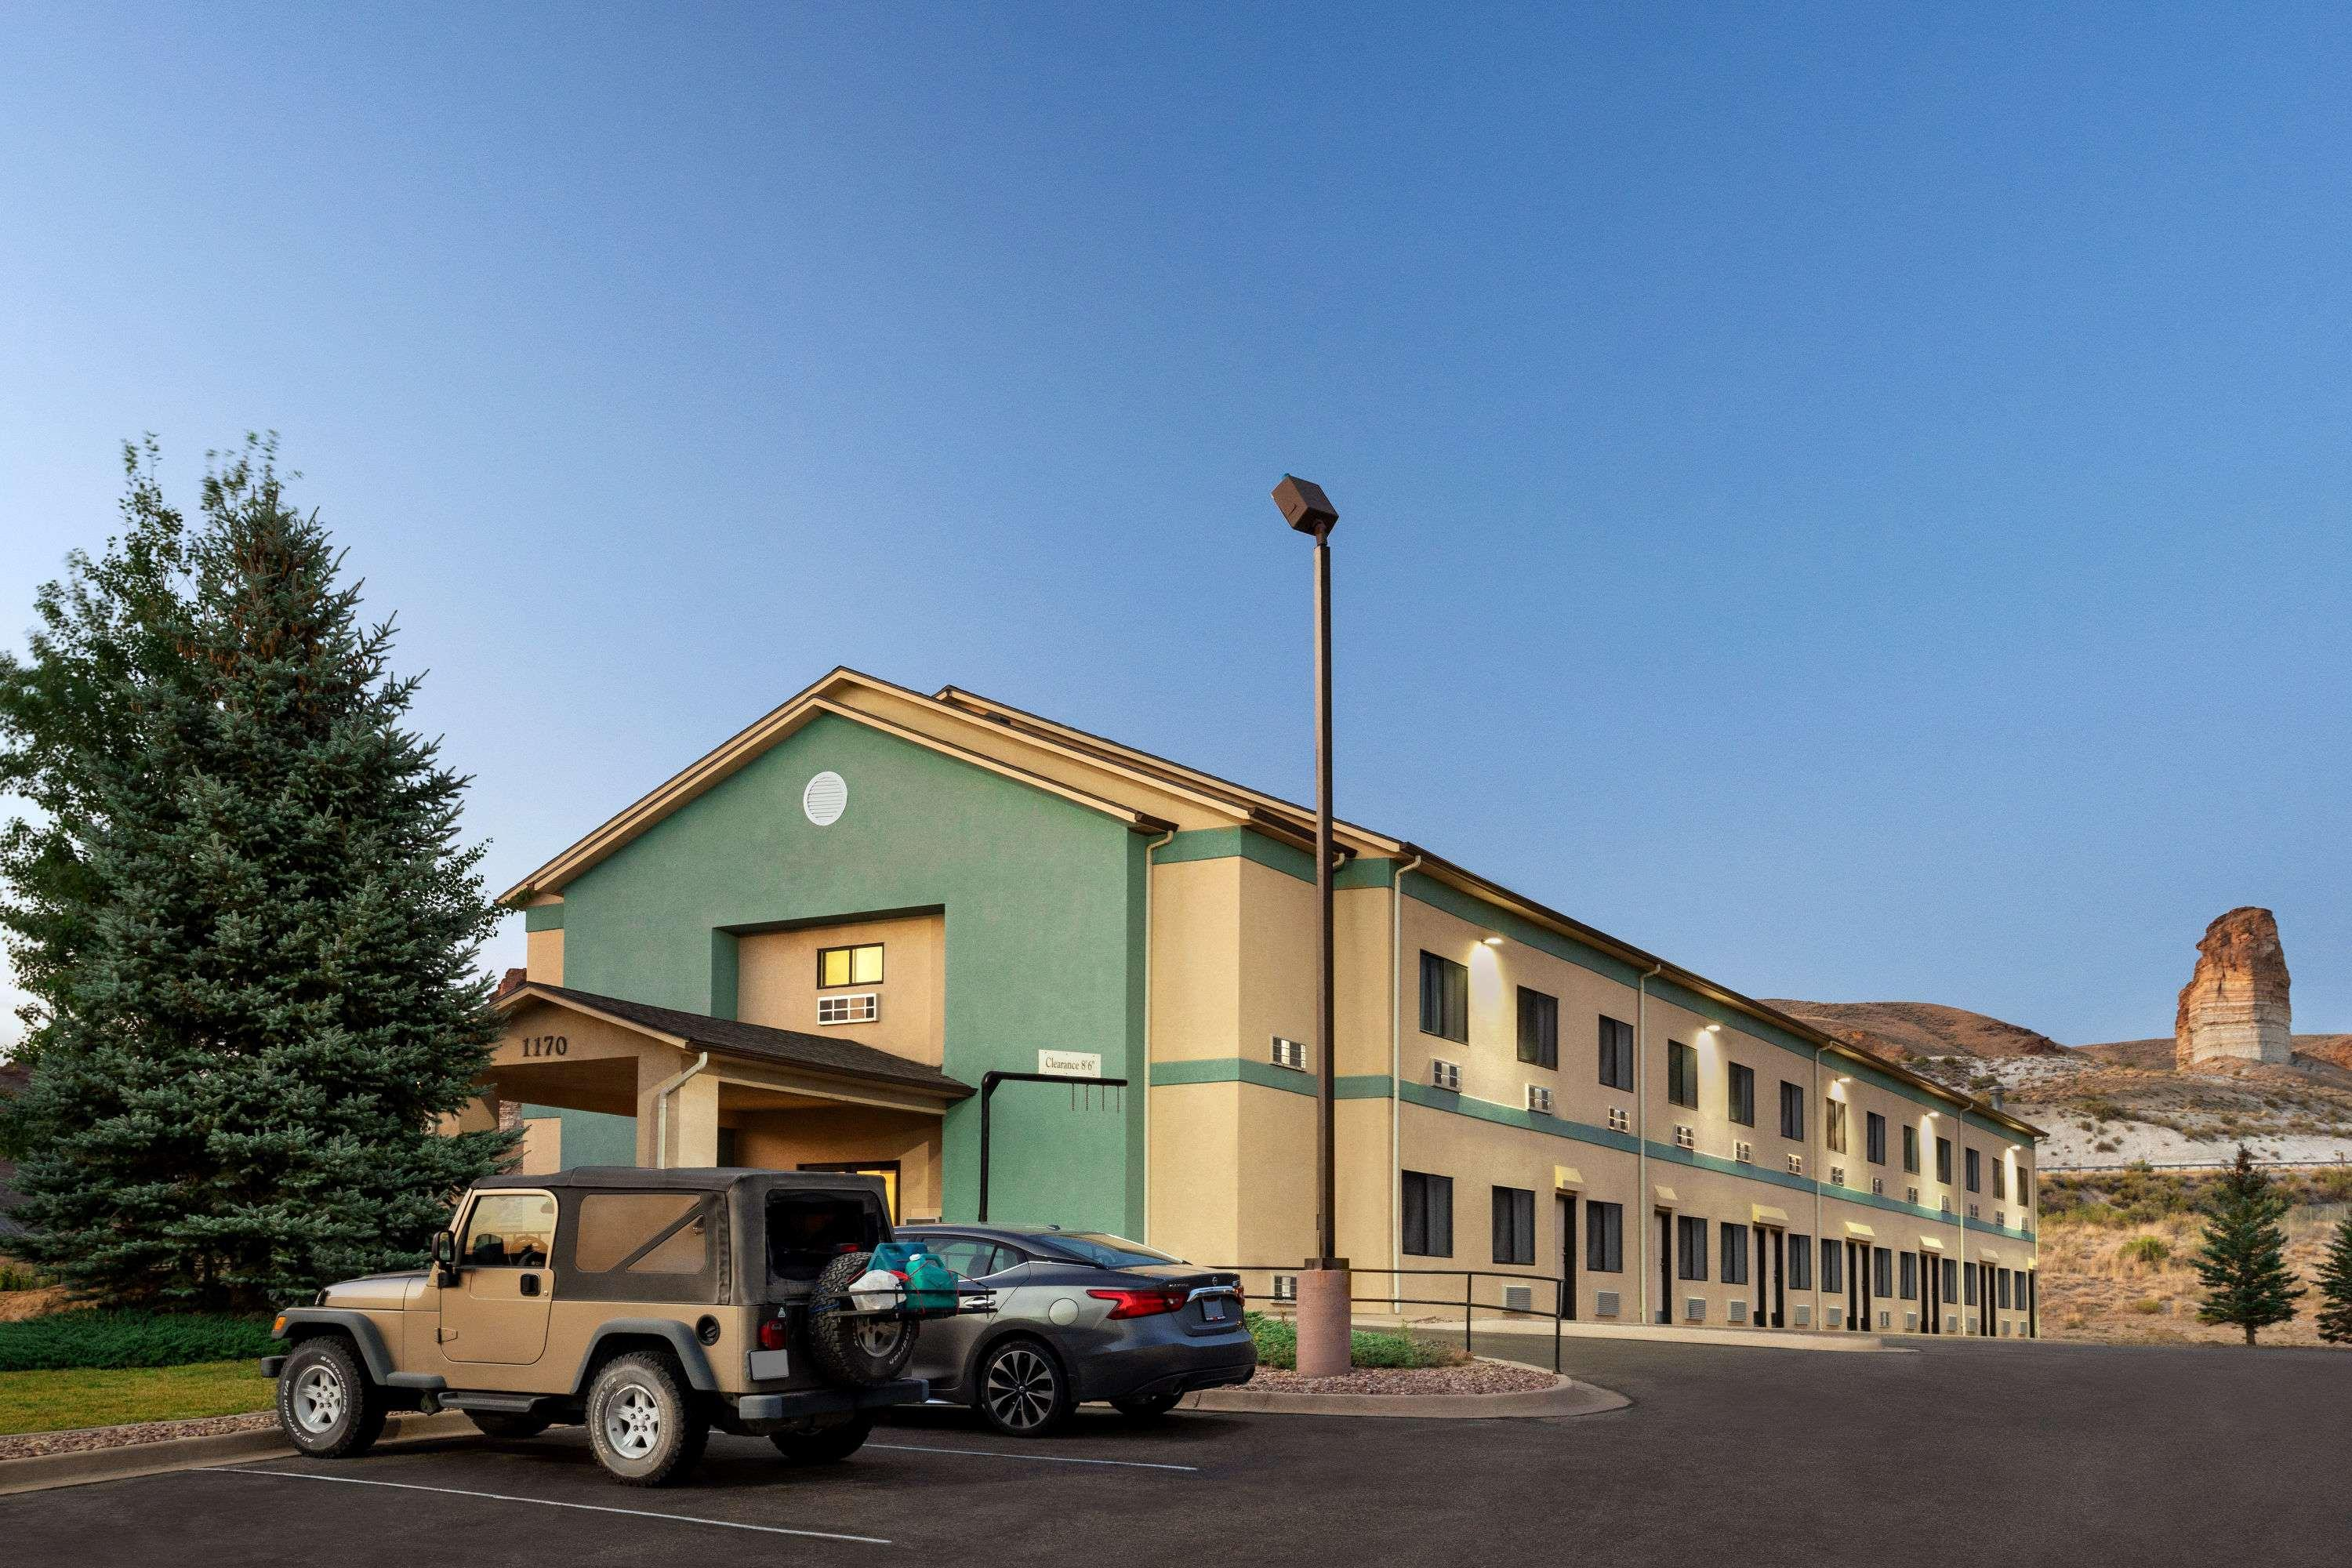 Travelodge by Wyndham Green River, Sweetwater